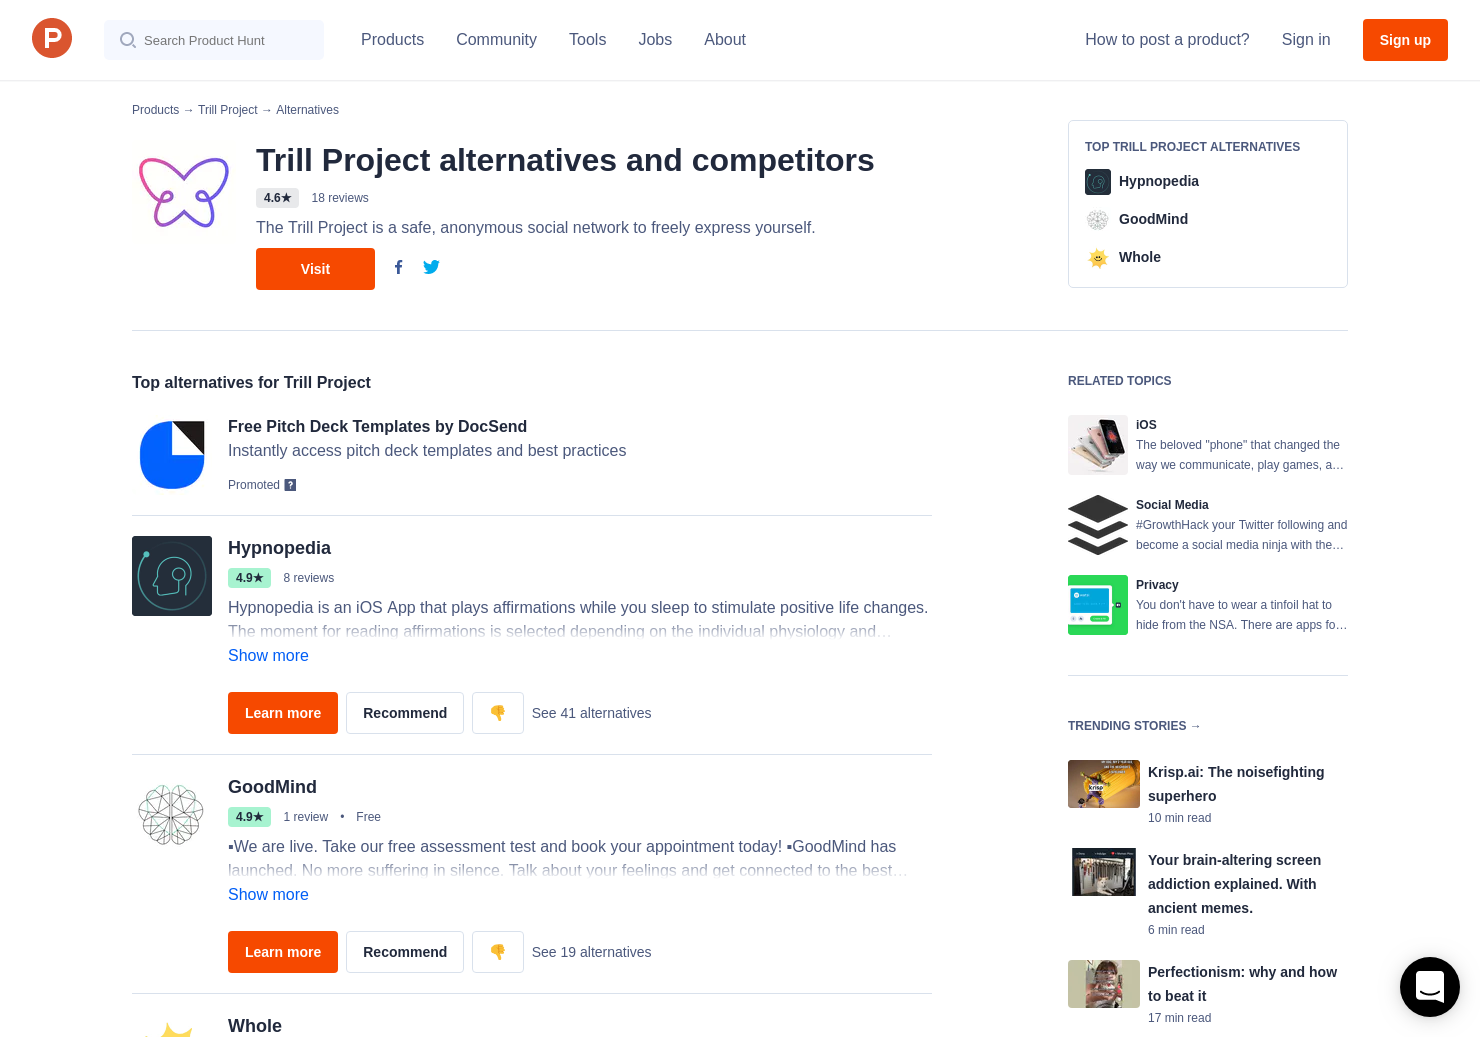 18 Alternatives to Trill for iPhone | Product Hunt